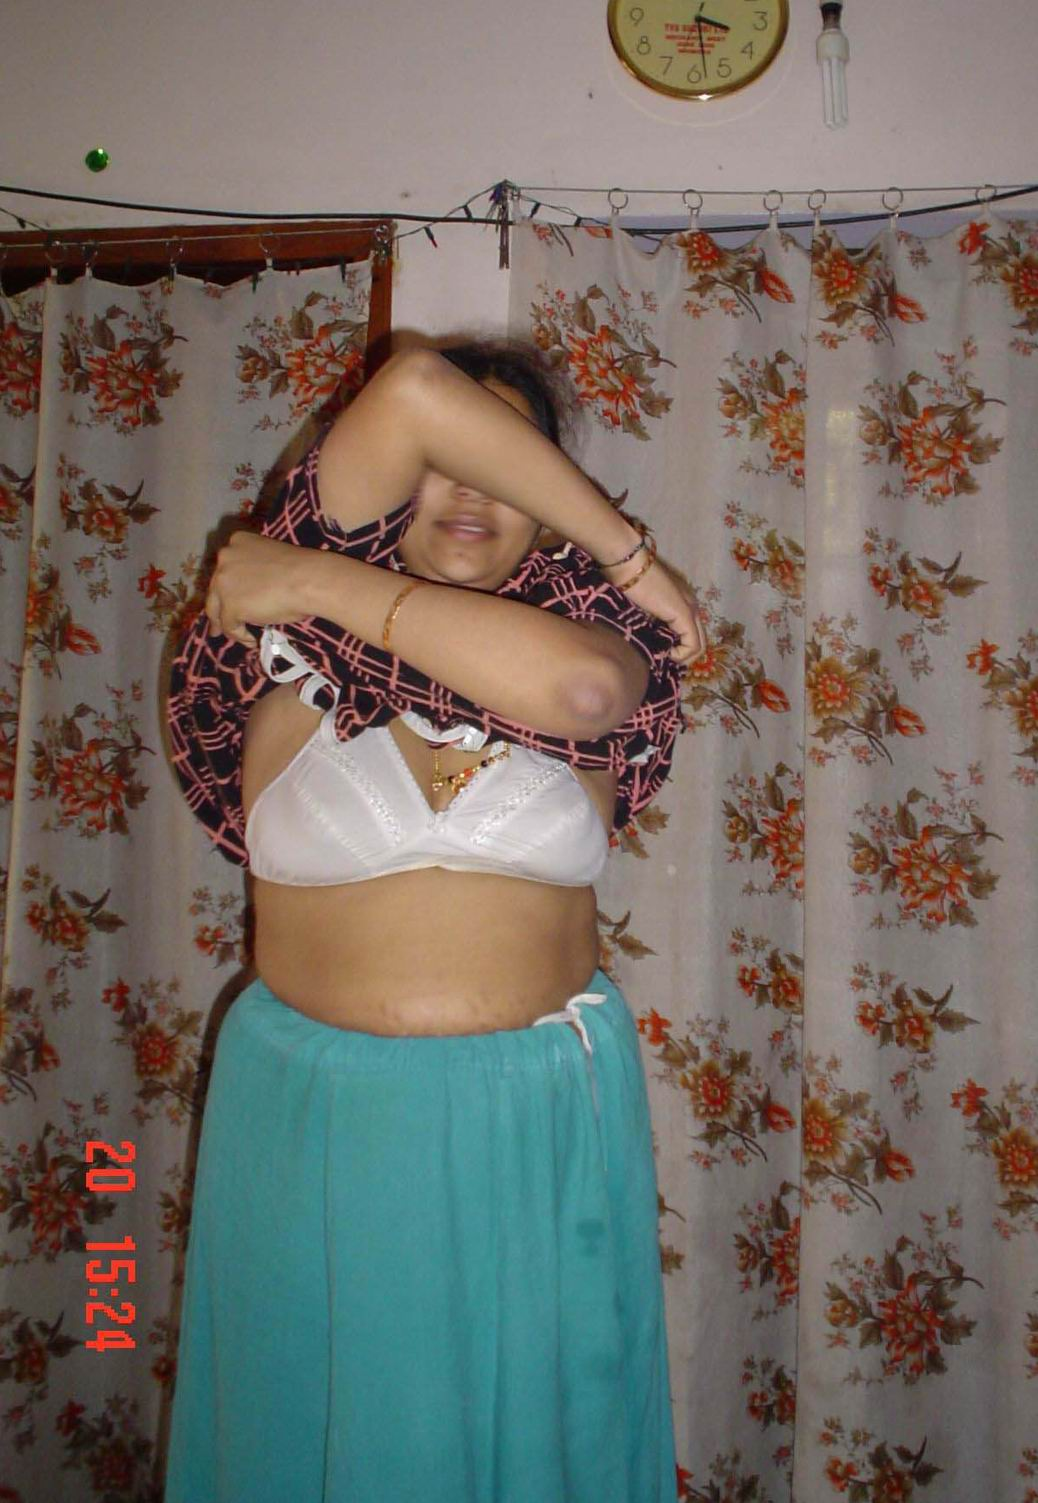 Adult Images 2020 Chubby 18 tgp